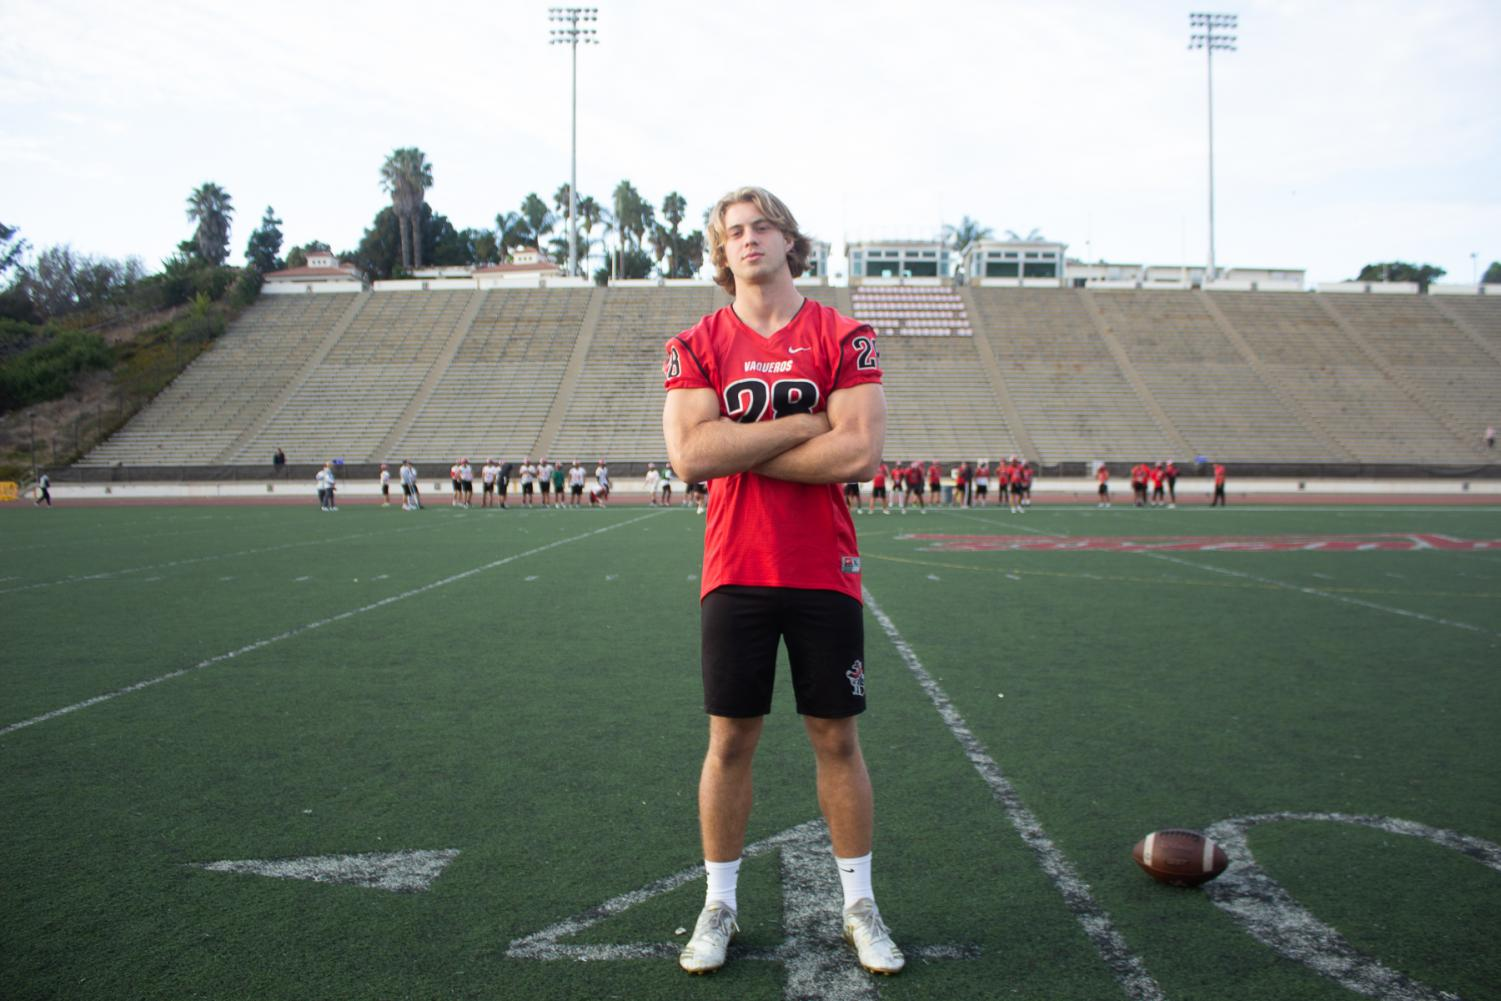 City College football player Jacob Shultz stands on La Playa Field before practice on Friday afternoon, Nov. 15, 2019, at City College in Santa Barbara, Calif. Shultz moved to Santa Barbara from Eugene, Ore. to play football for the Vaqueros as a defensive linemen.